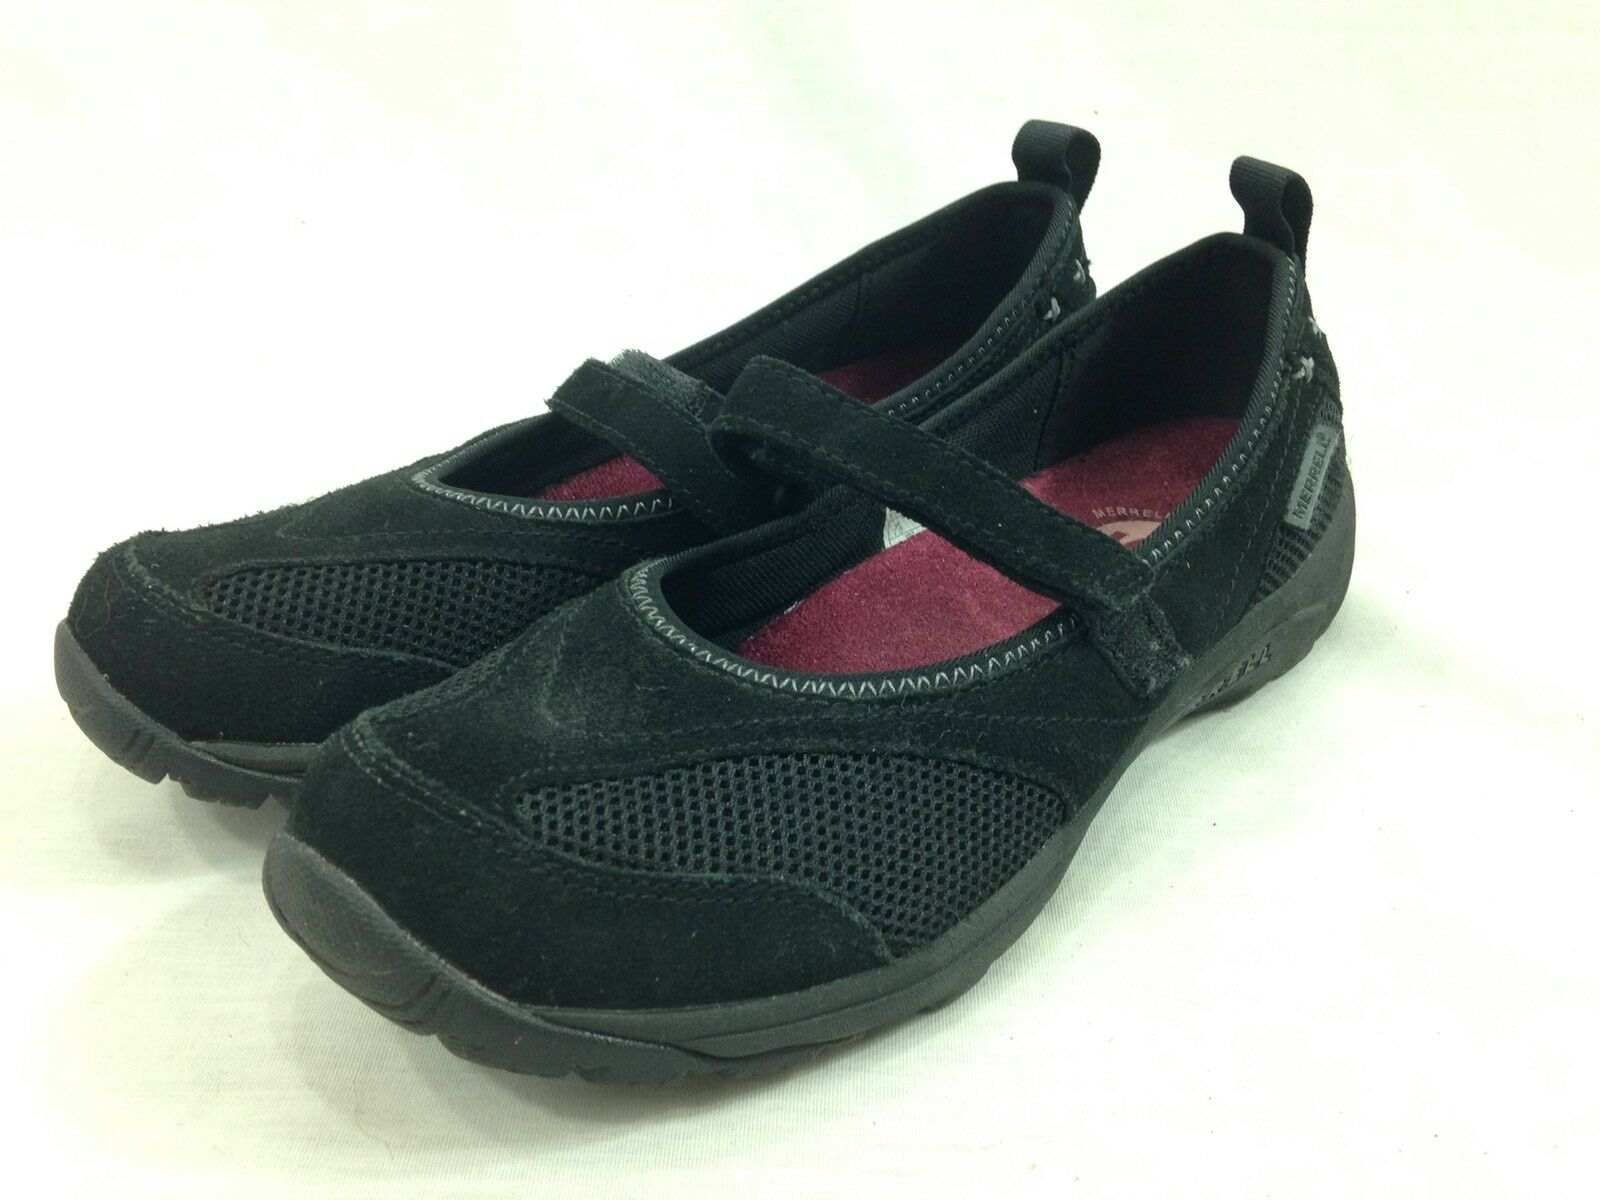 Merrell AirCushion shoes shoes shoes Womens 7.5 Black Mary Jane Slip On Close Toe Mesh Suede 7969a6